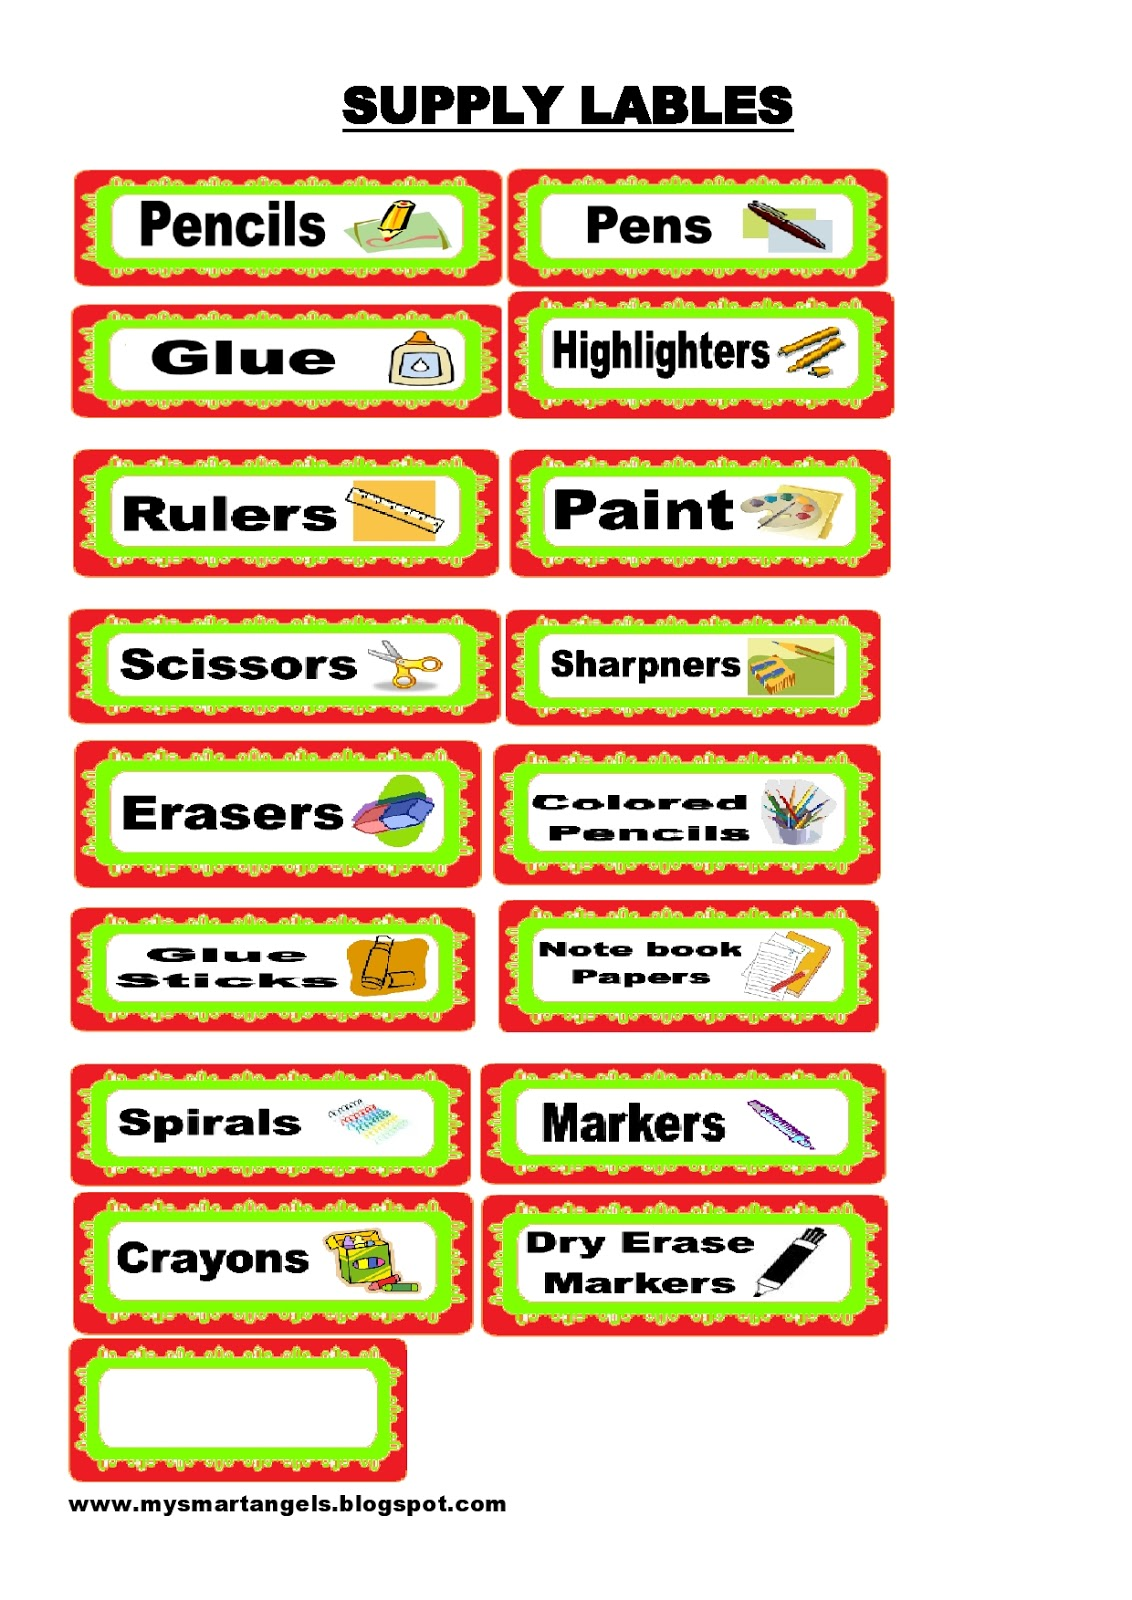 labels for school supplies images